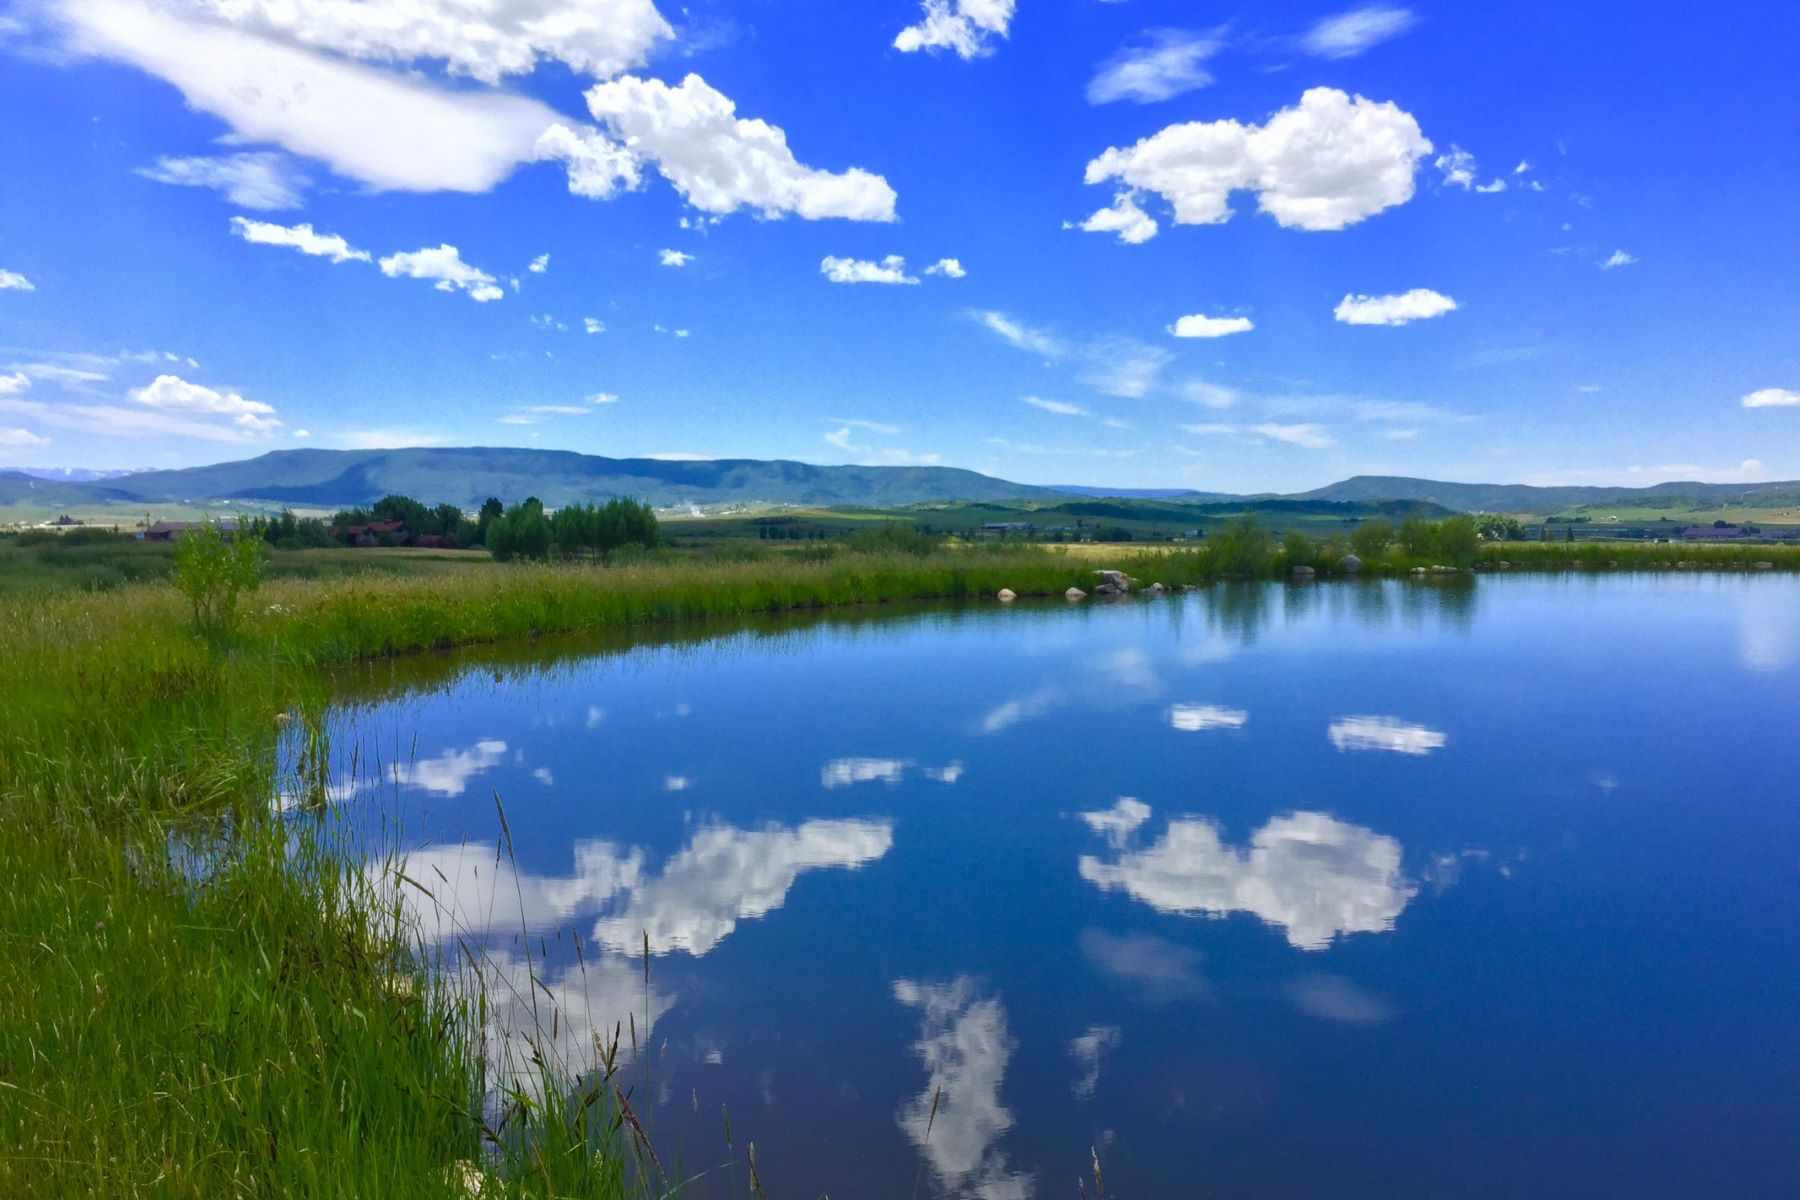 Land for Sale at Excellent Location RCR 20 CR Adjoins both CO 131 & Hwy 40 Steamboat Springs, Colorado, 80477 United States